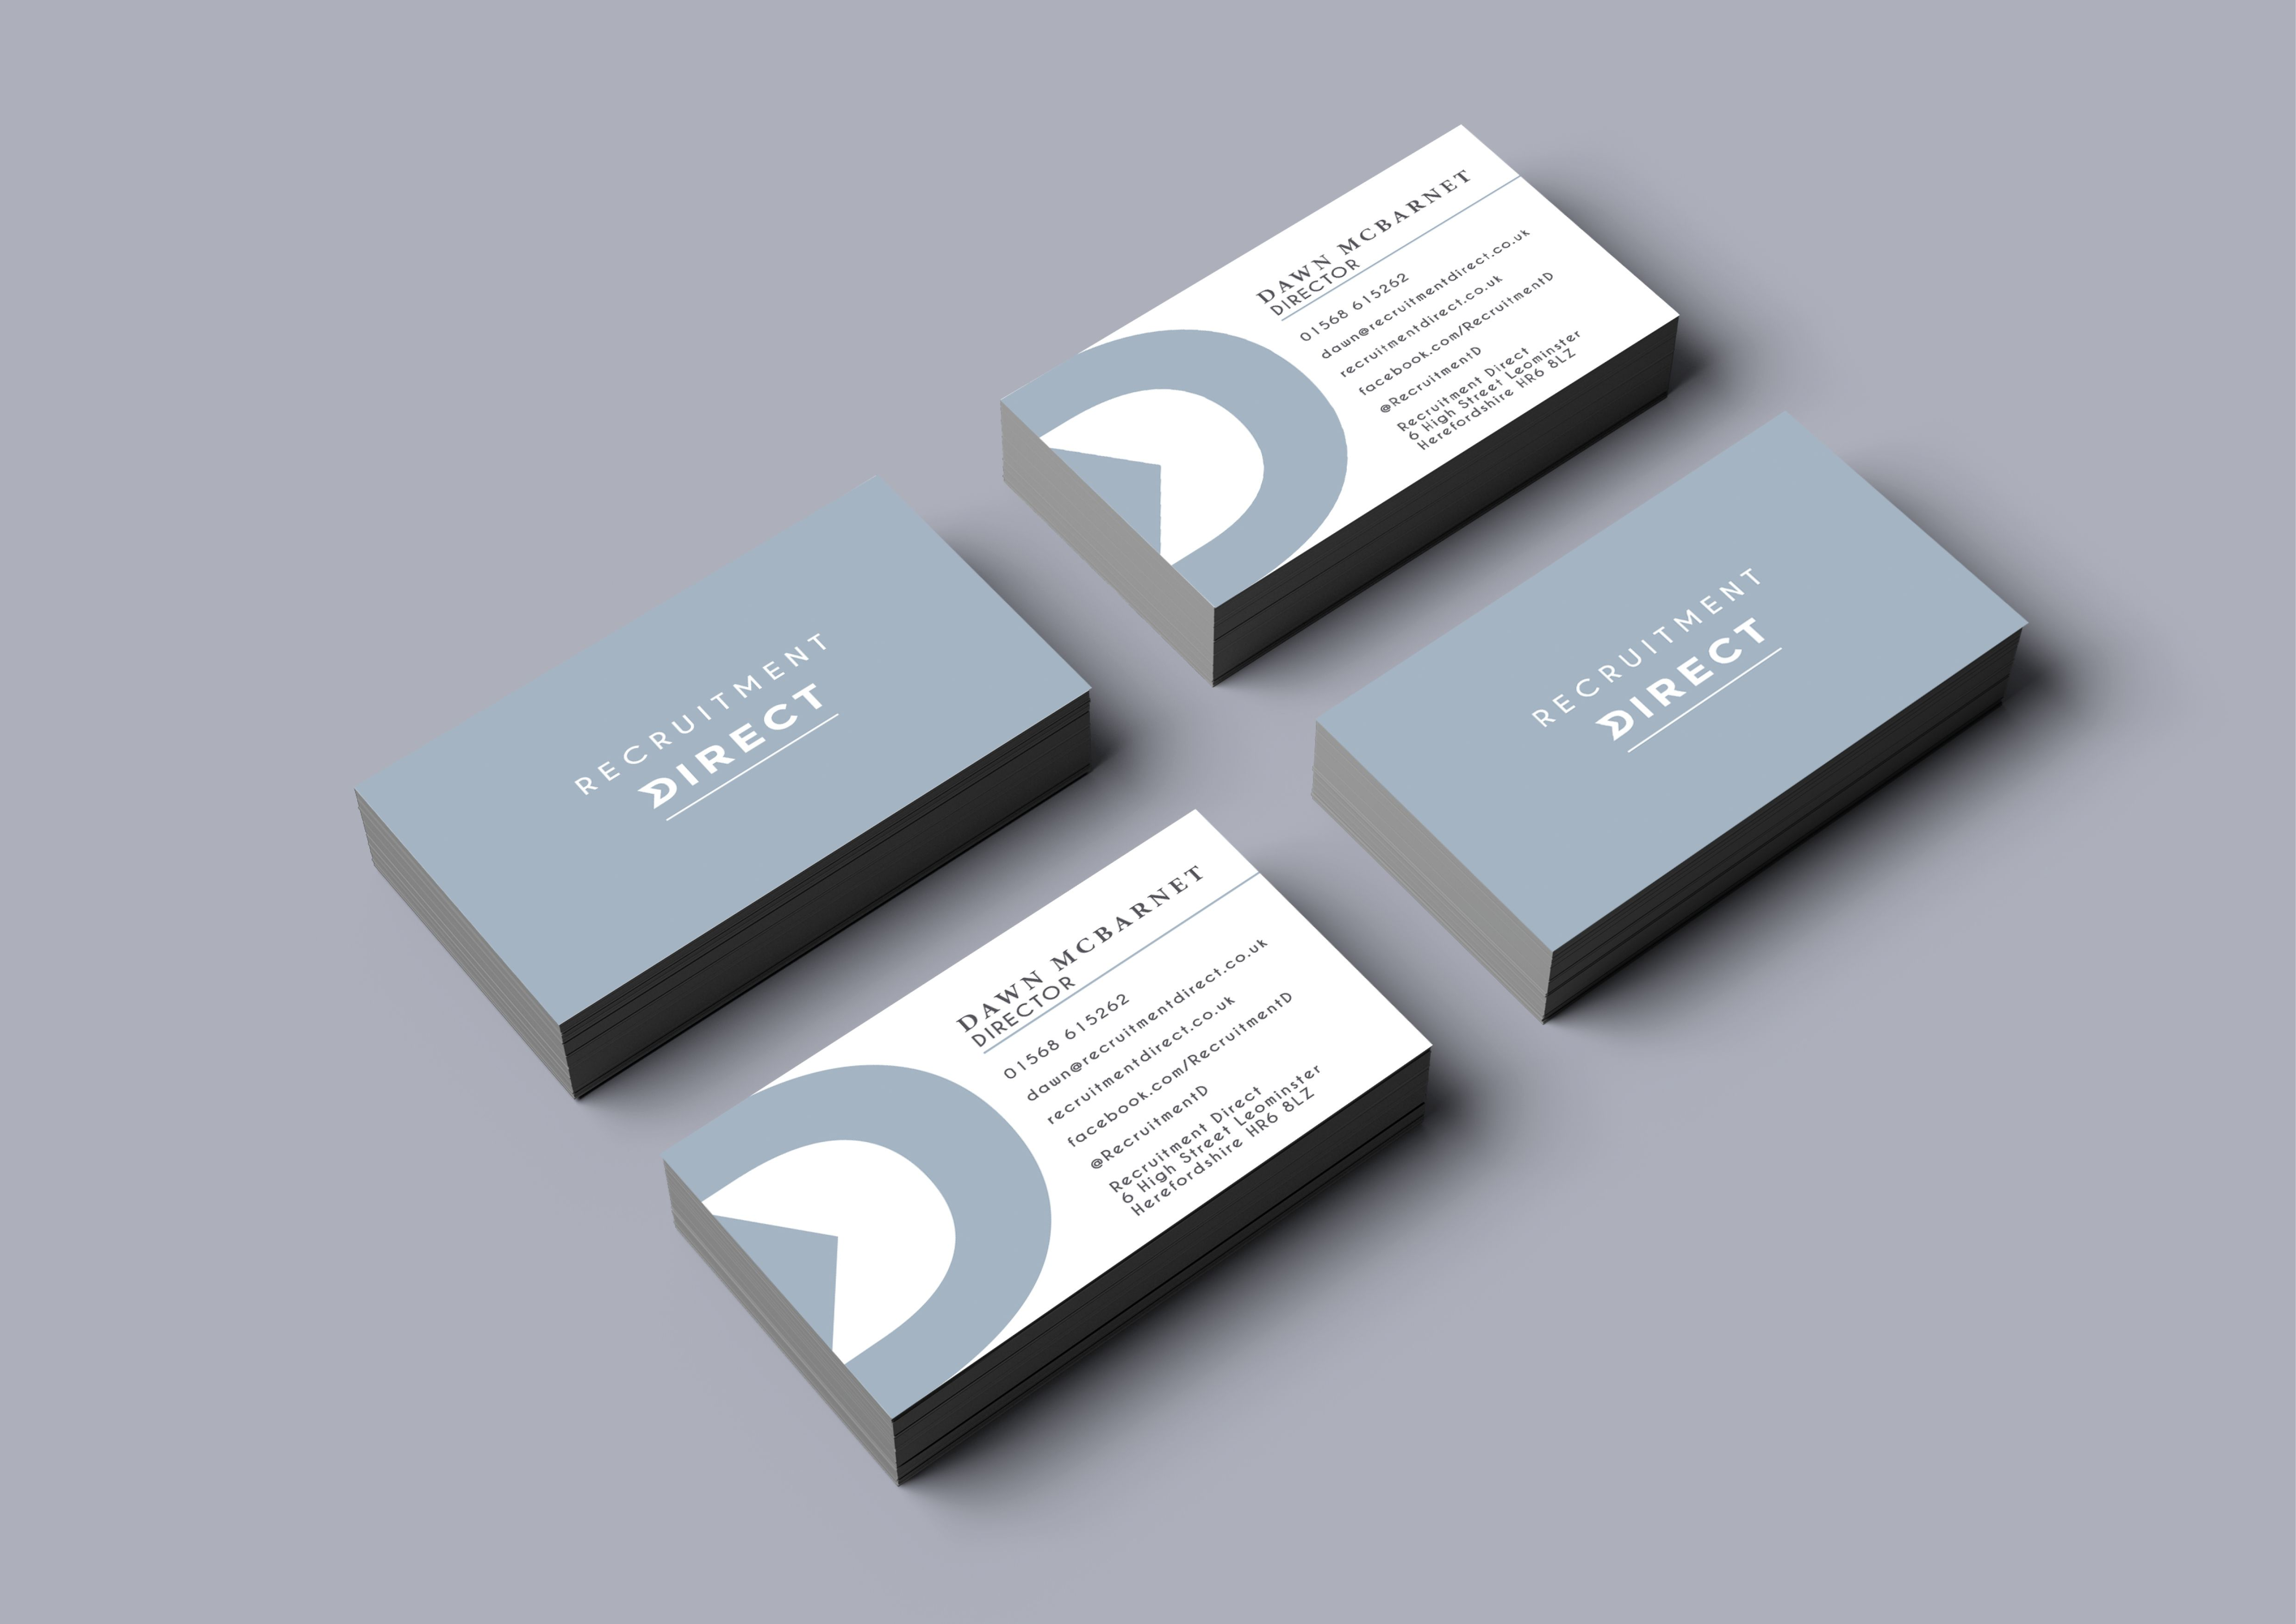 Recruitment Company Business Card Design By Www Theseedgroup Co Uk Contemporary Grey Minimal Creativ Company Business Cards Business Card Design Card Design